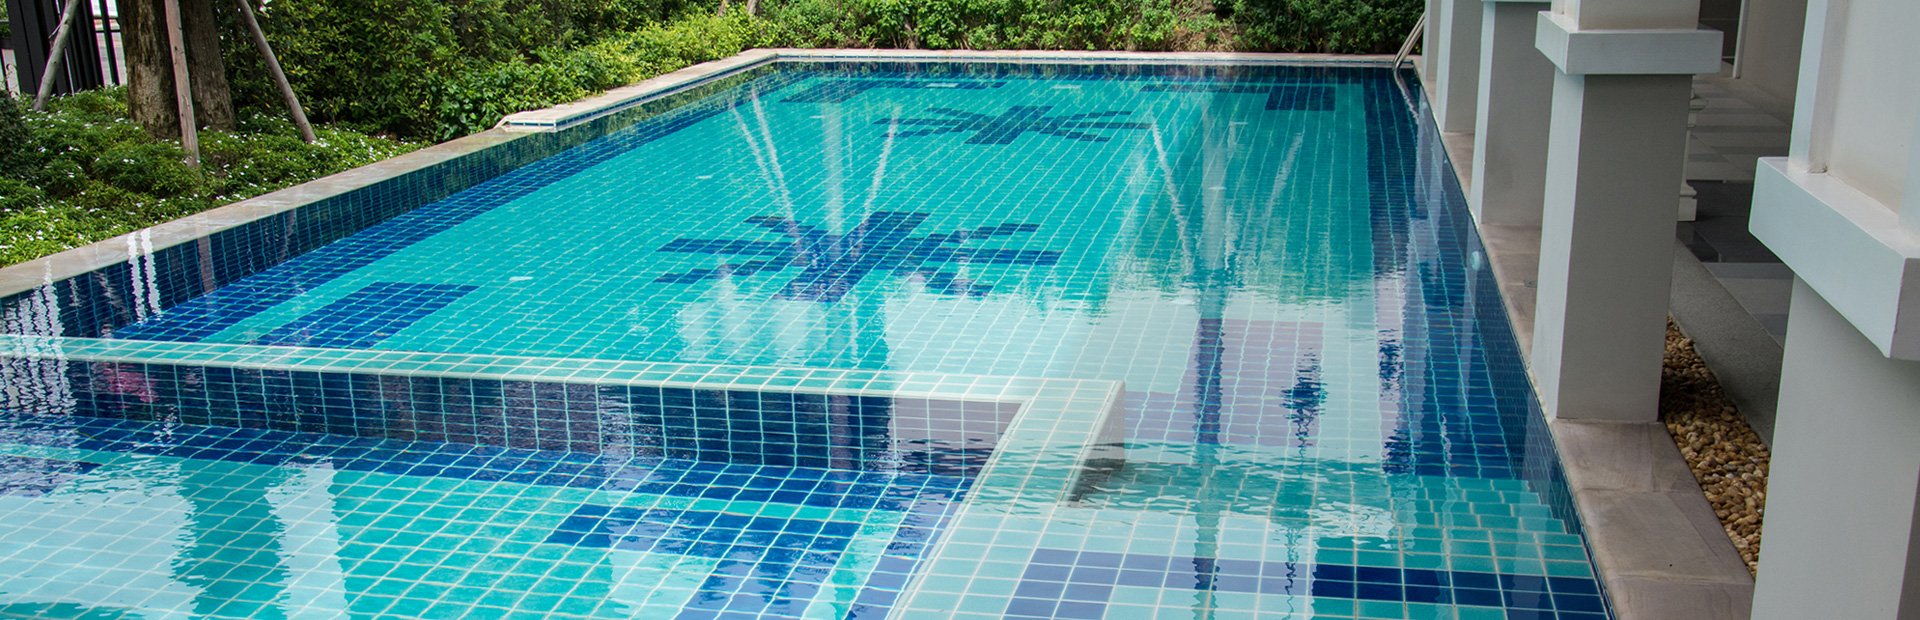 Blue Fire Pools and Outdoor Living - Keller, Texas